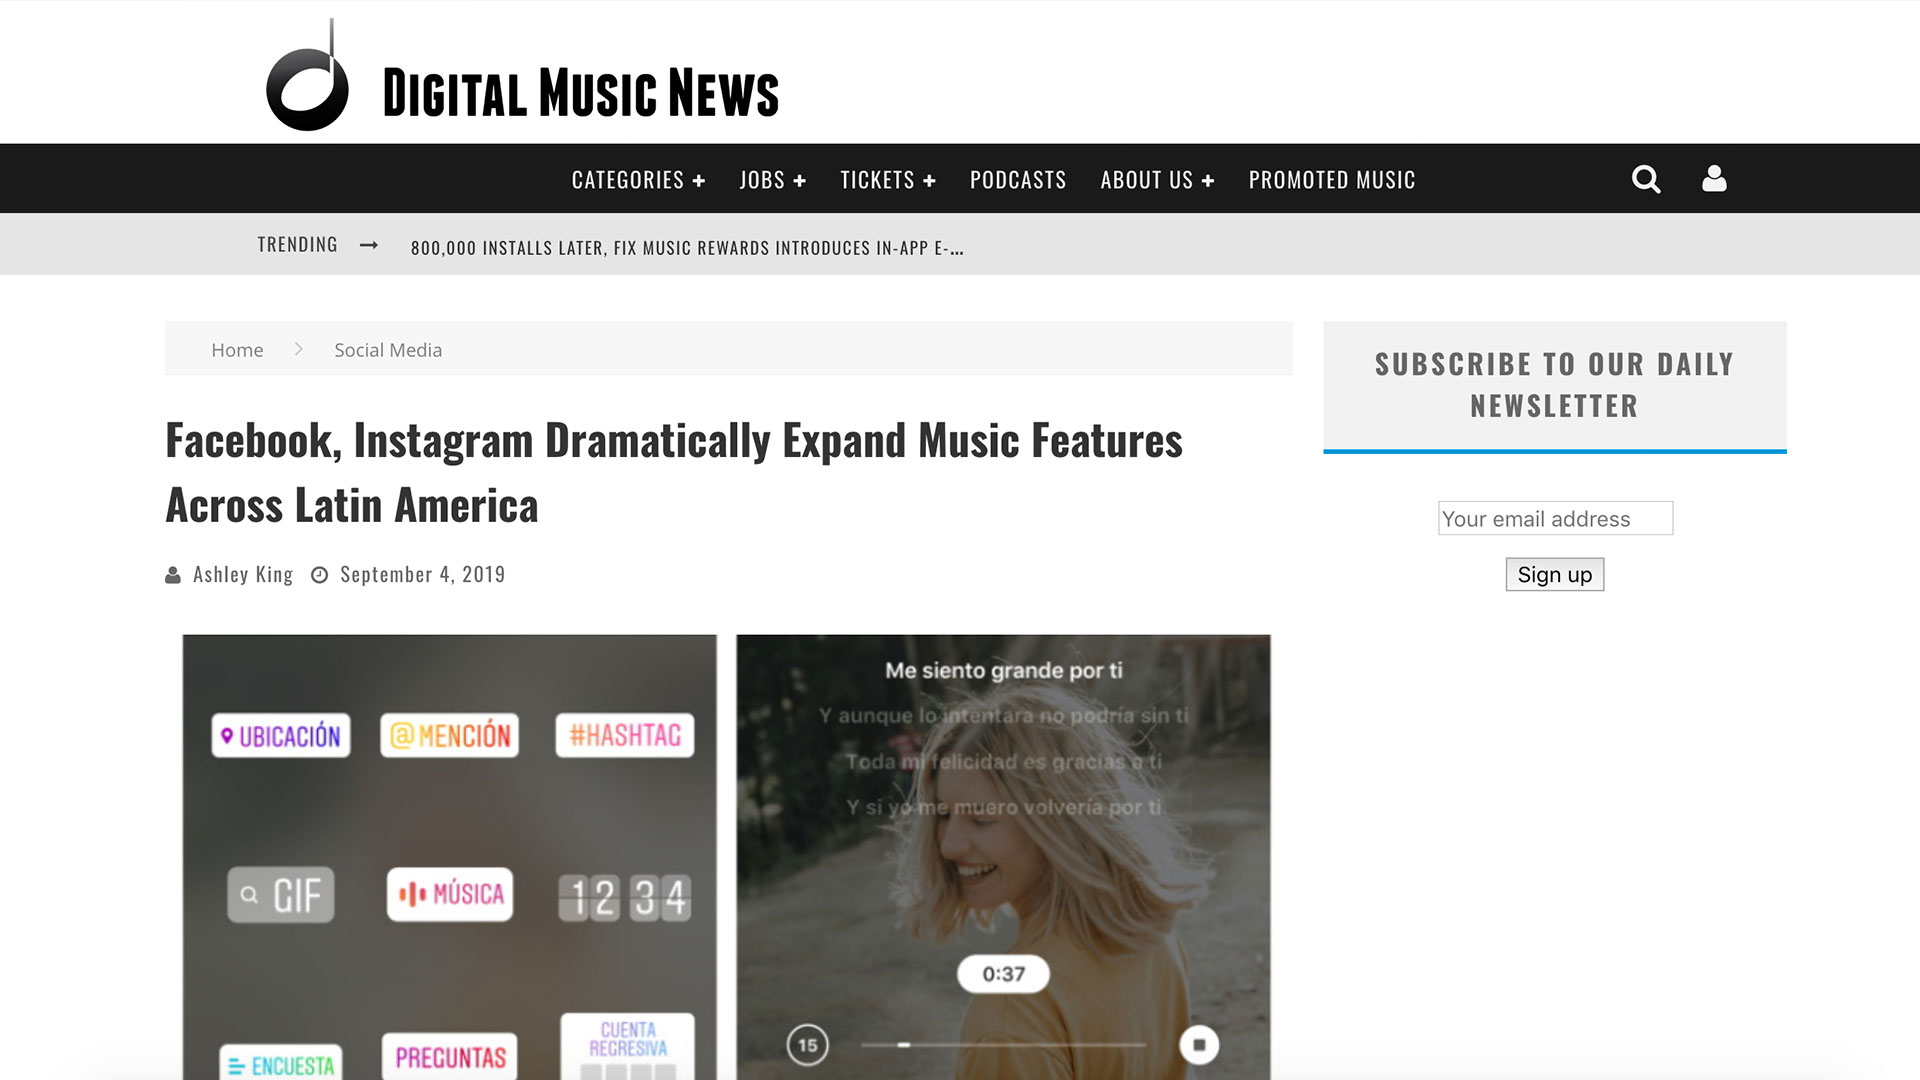 Fairness Rocks News Facebook, Instagram Dramatically Expand Music Features Across Latin America